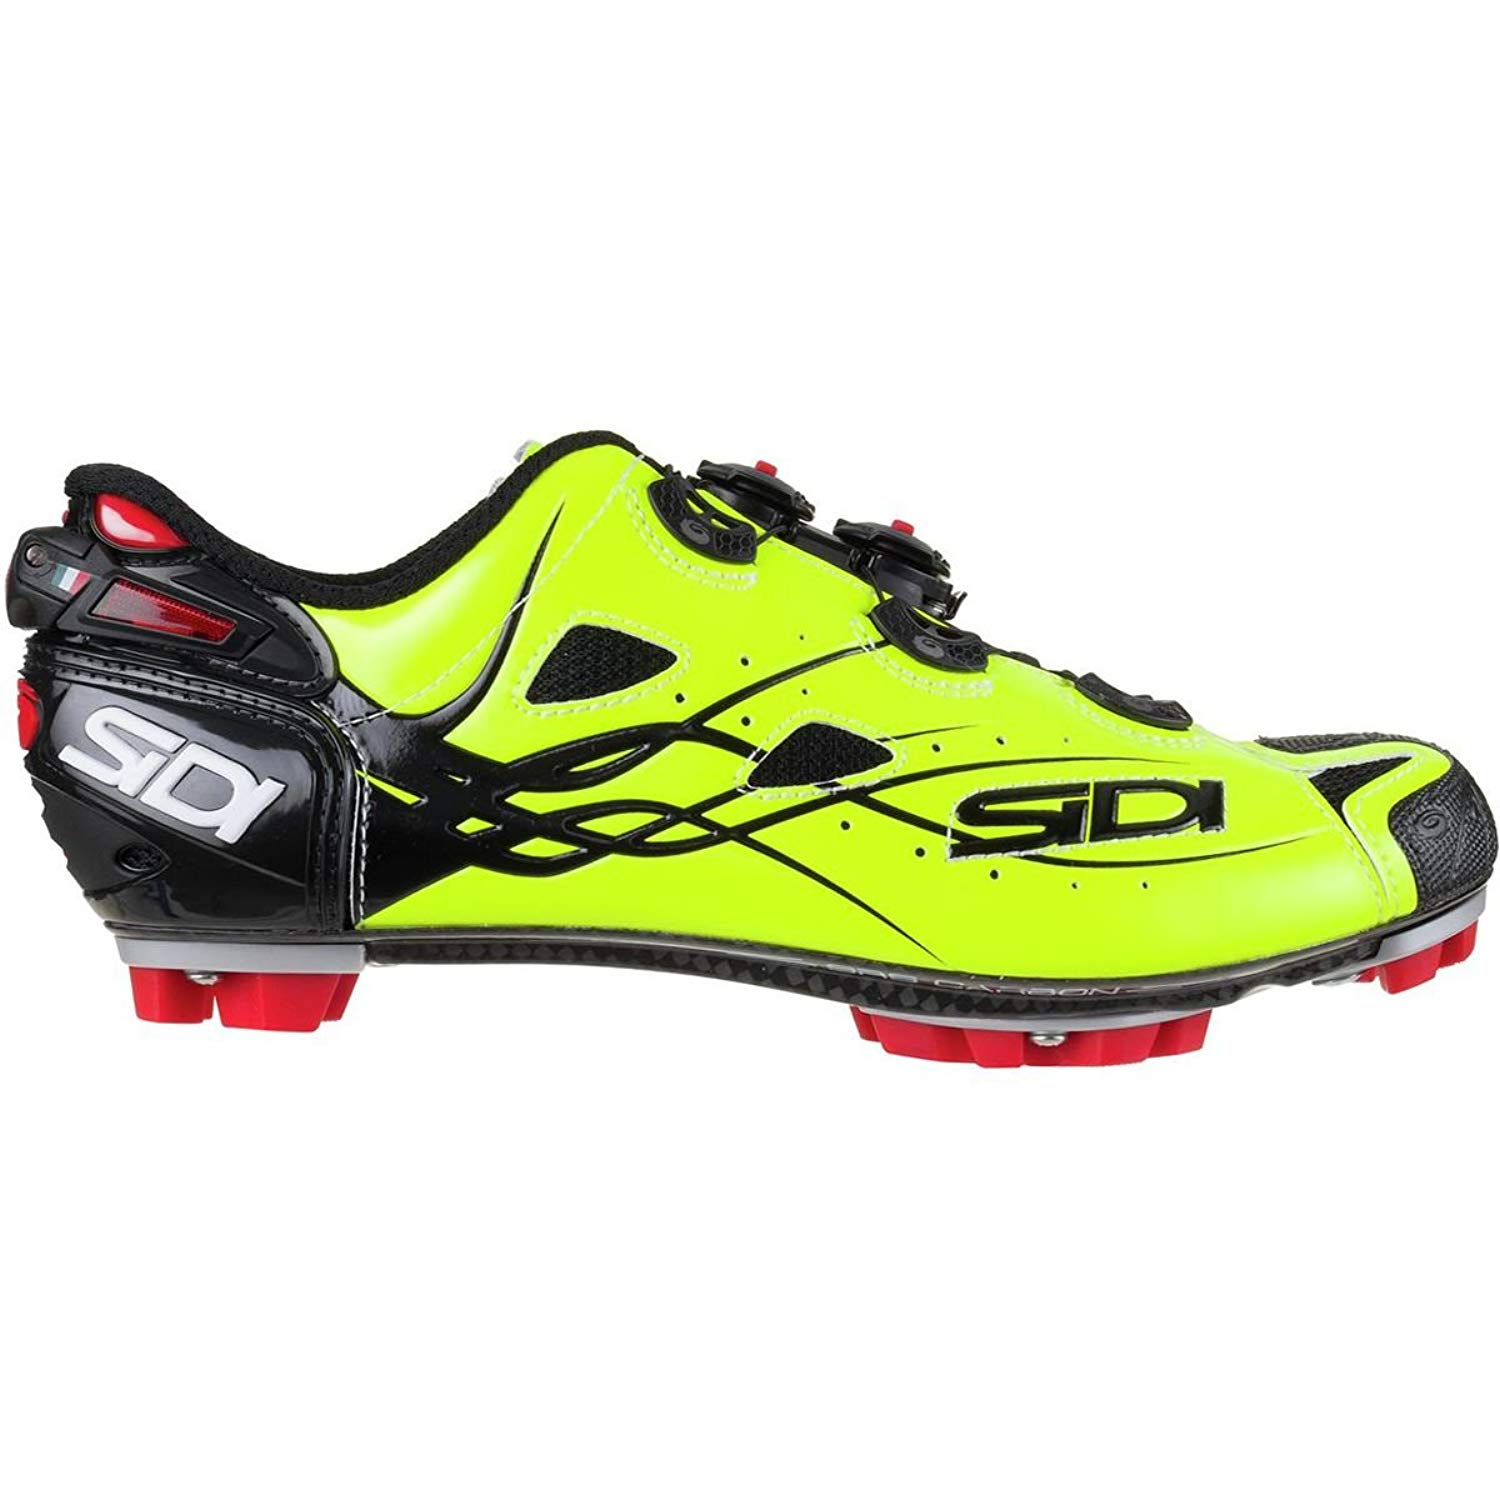 90df73deb96 Cheap Bike Shoes Sidi, find Bike Shoes Sidi deals on line at Alibaba.com